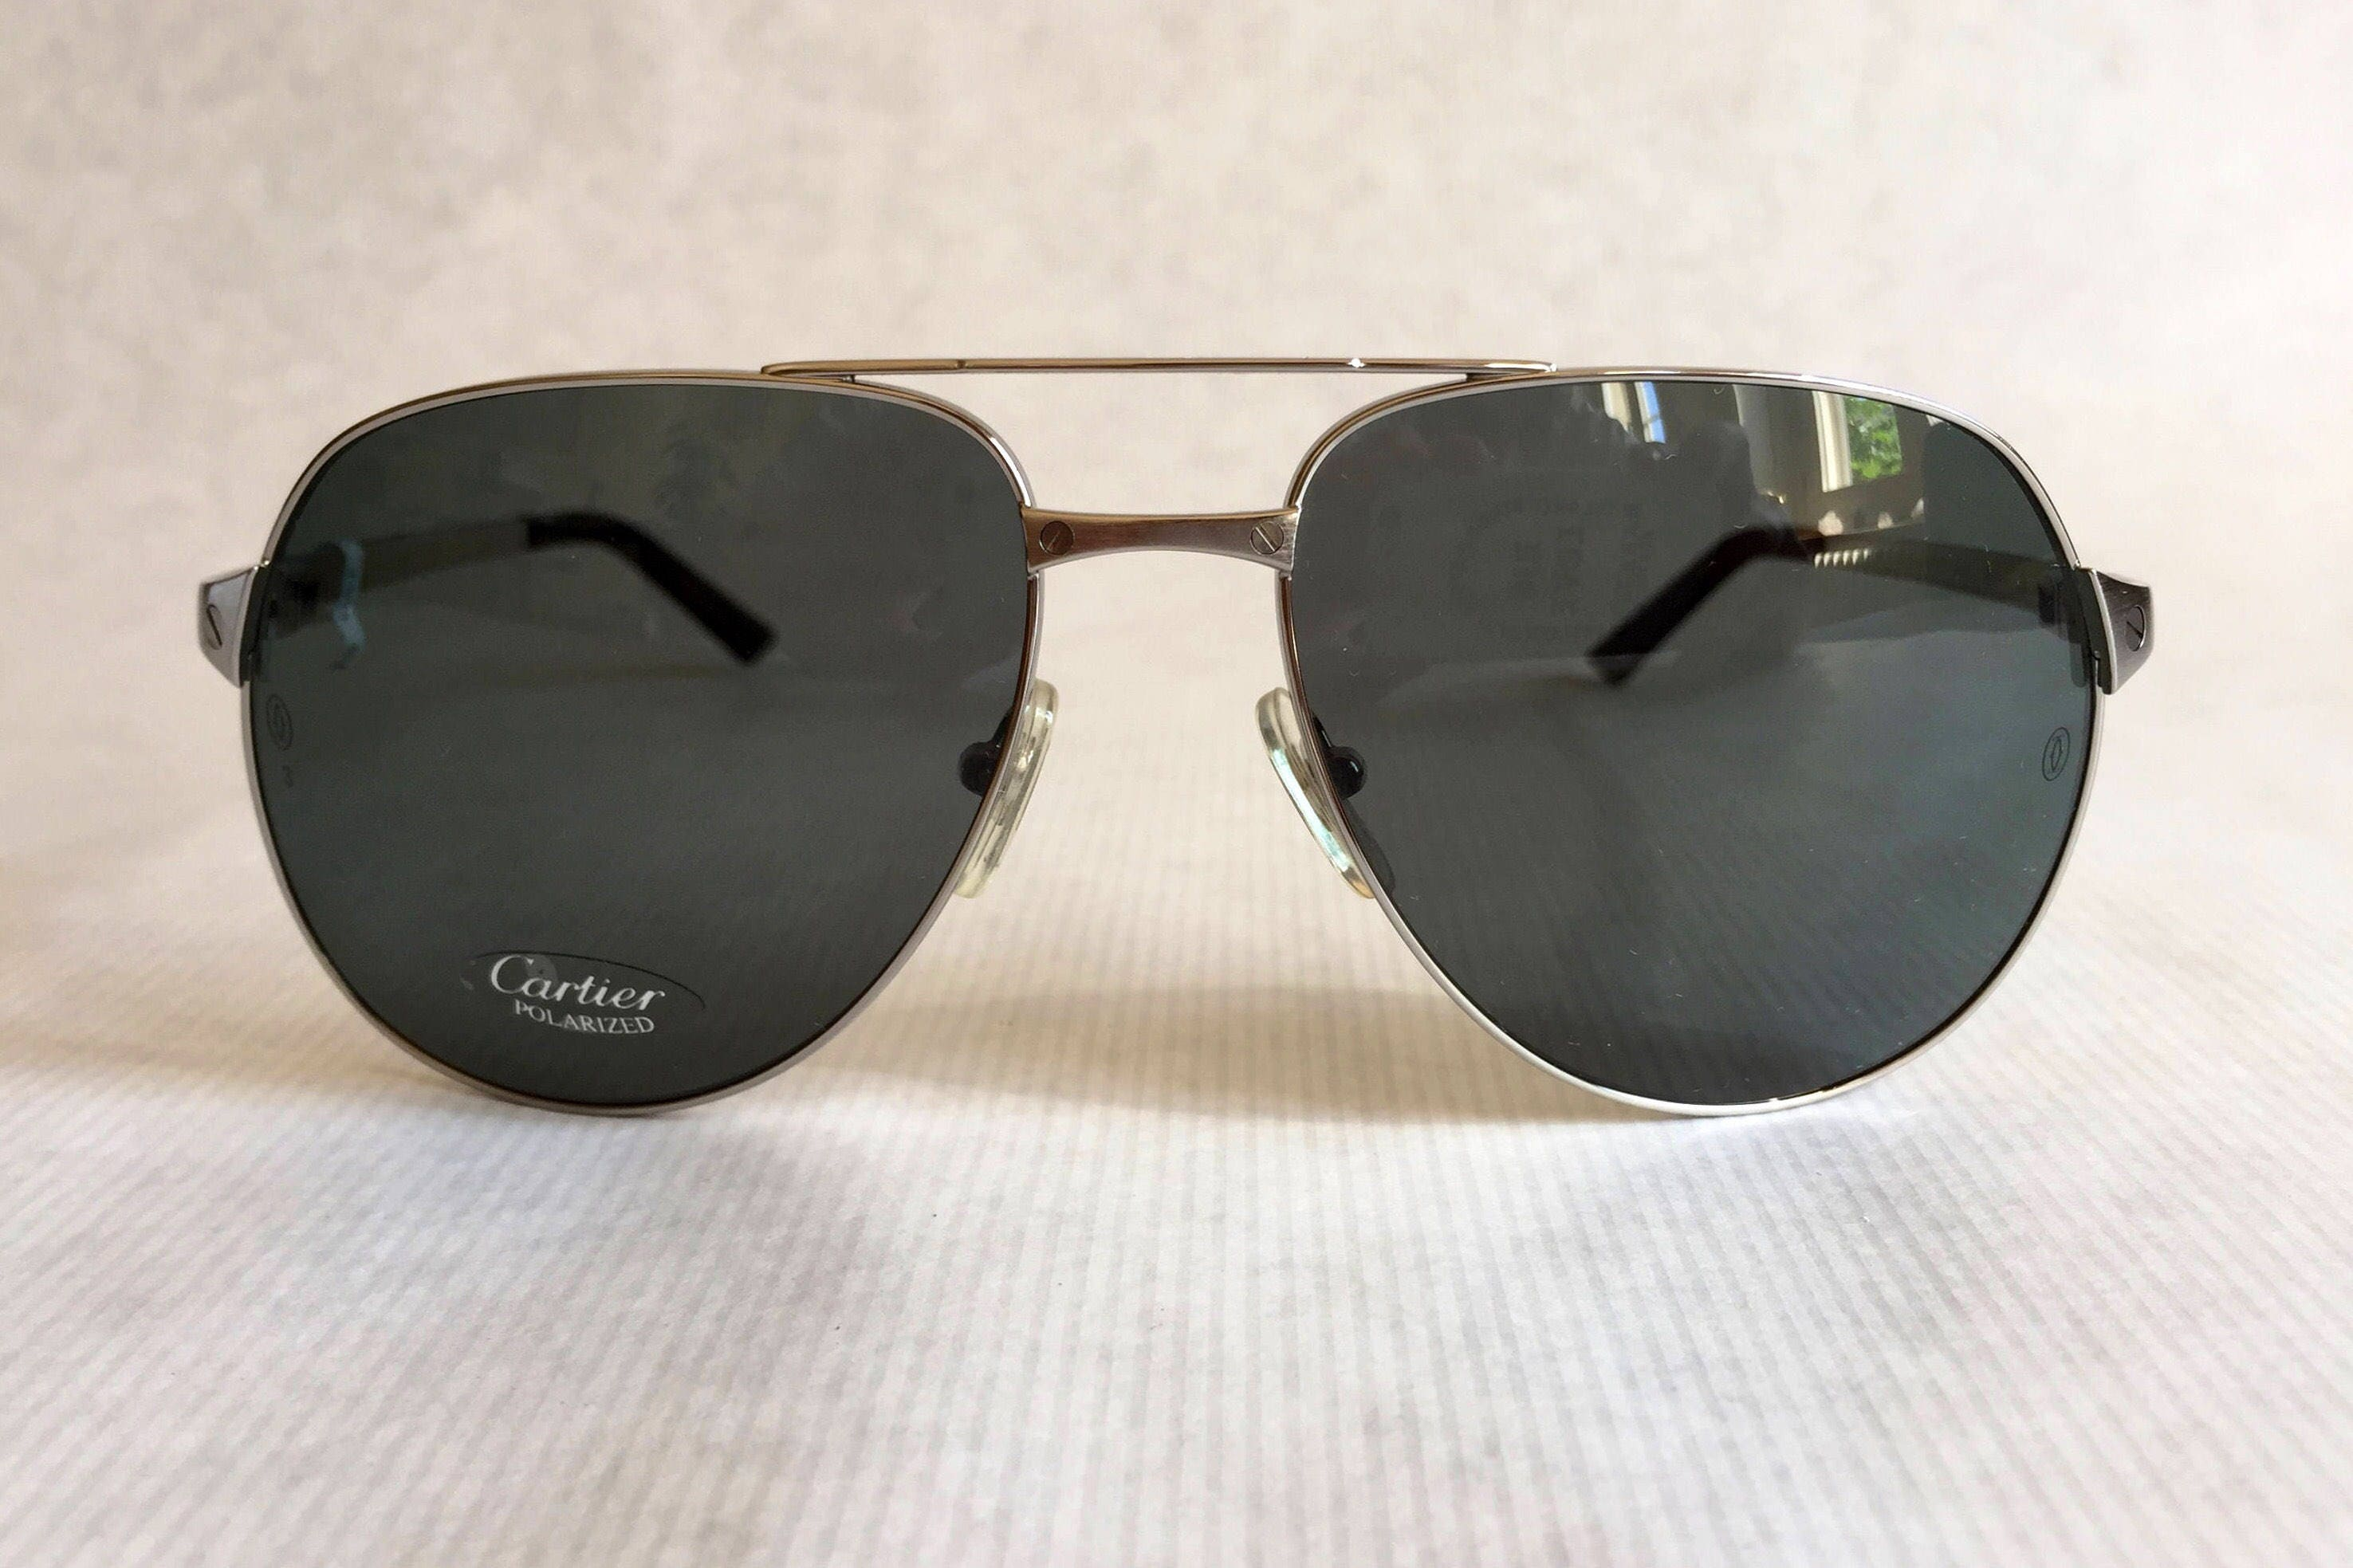 9978ce578137 Cartier Aviator Sunglasses Santos Dumont - Restaurant and Palinka Bar